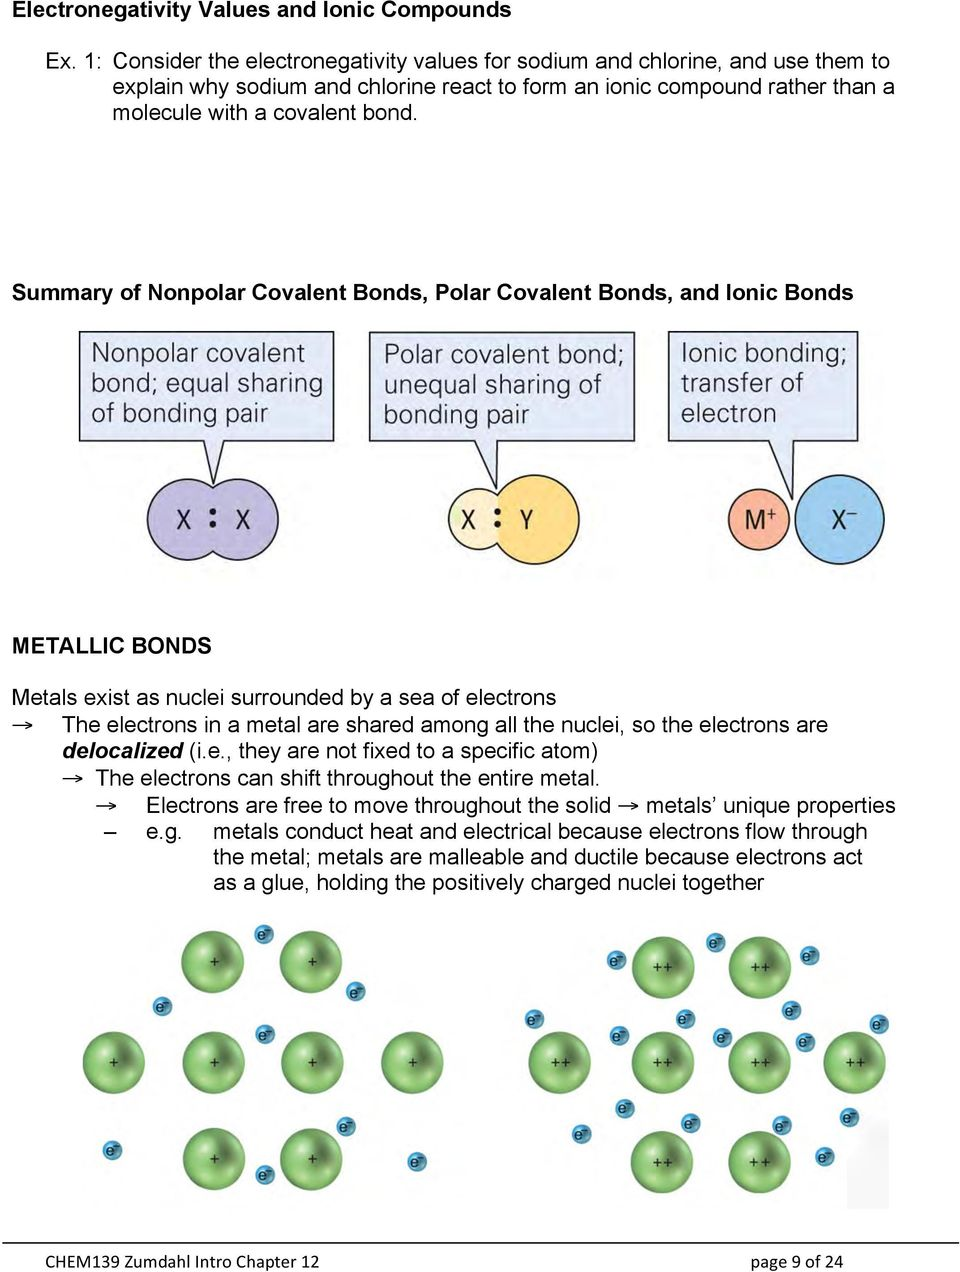 Summary of Nonpolar Covalent Bonds, Polar Covalent Bonds, and Ionic Bonds METALLIC BONDS Metals exist as nuclei surrounded by a sea of electrons The electrons in a metal are shared among all the